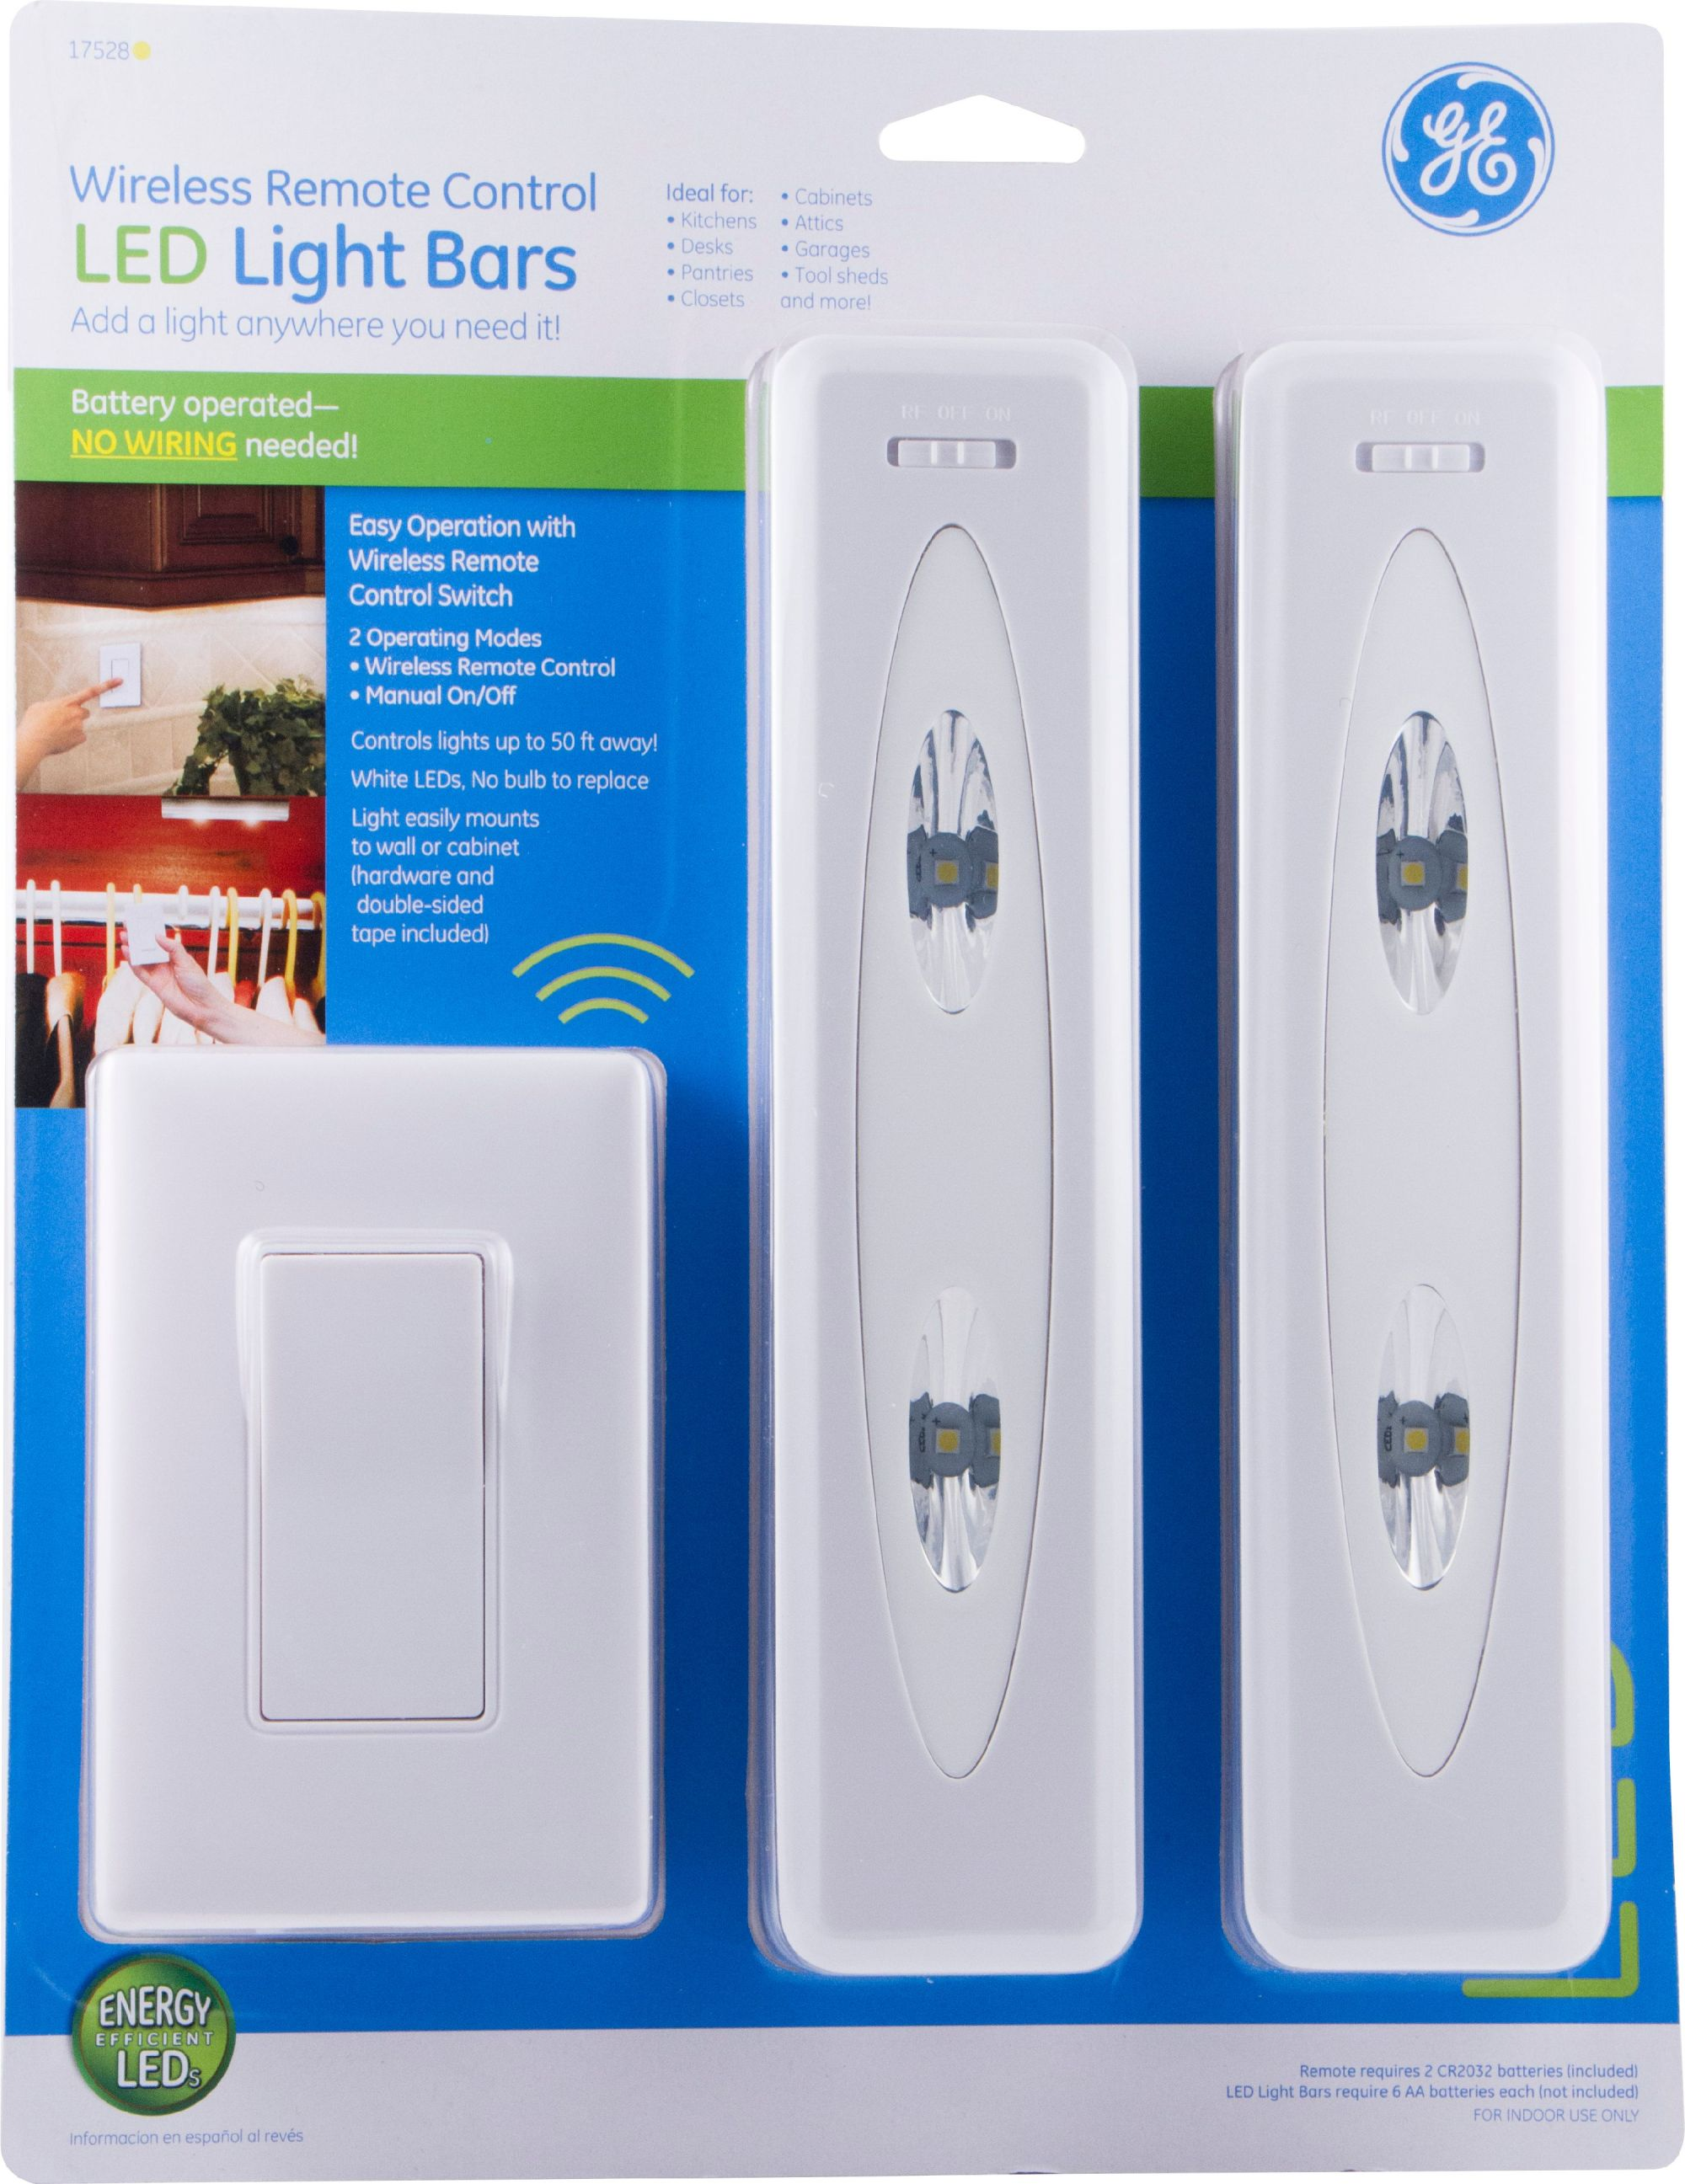 hight resolution of ge wireless remote control led light bars battery operated 17528 walmart com